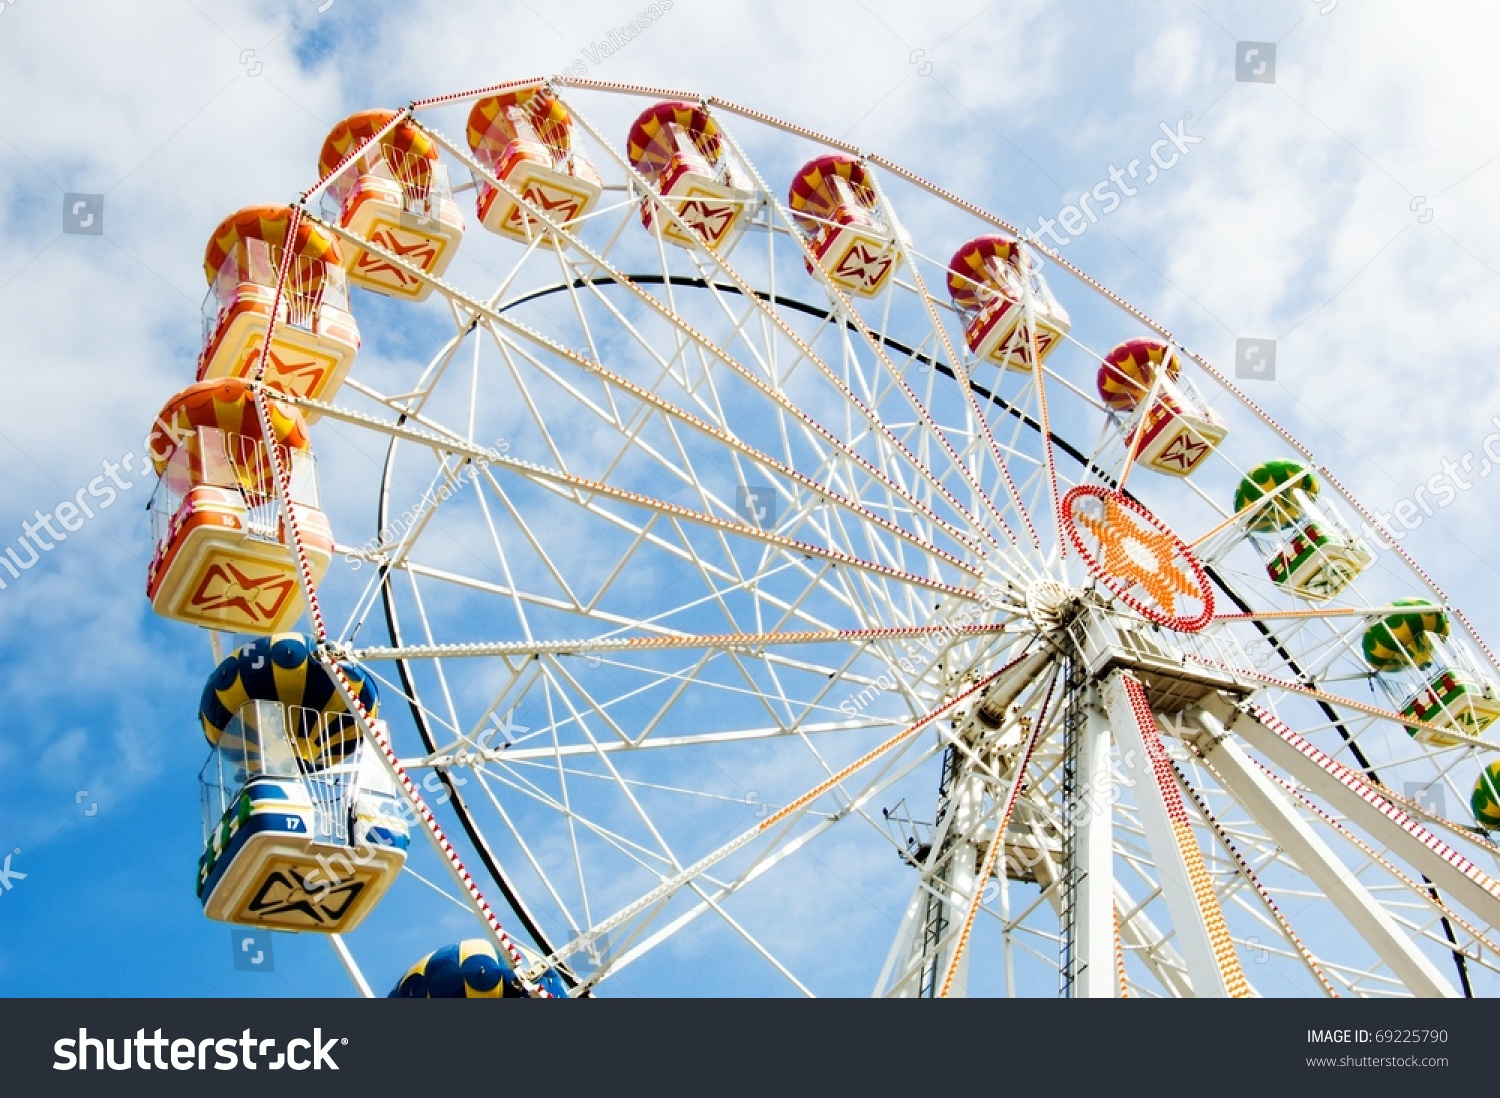 amusement park 2 essay Open document below is an essay on amusement park from anti essays, your source for research papers, essays, and term paper examples.